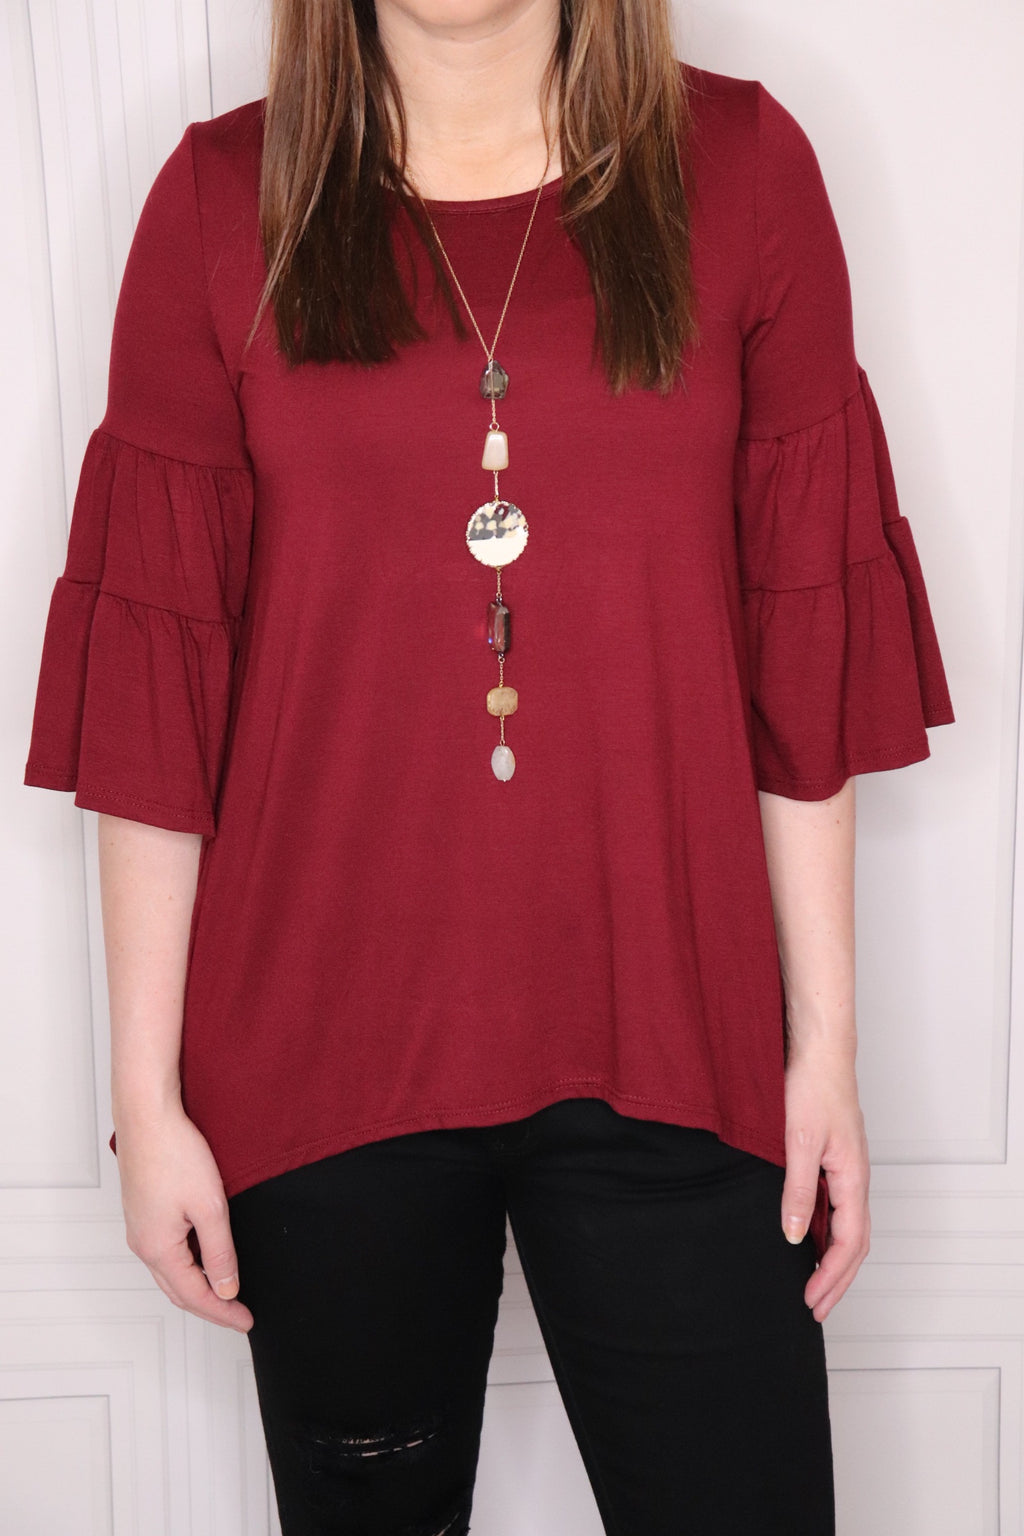 Short Ruffle Bell Sleeve Top - EmmyLou Boutique